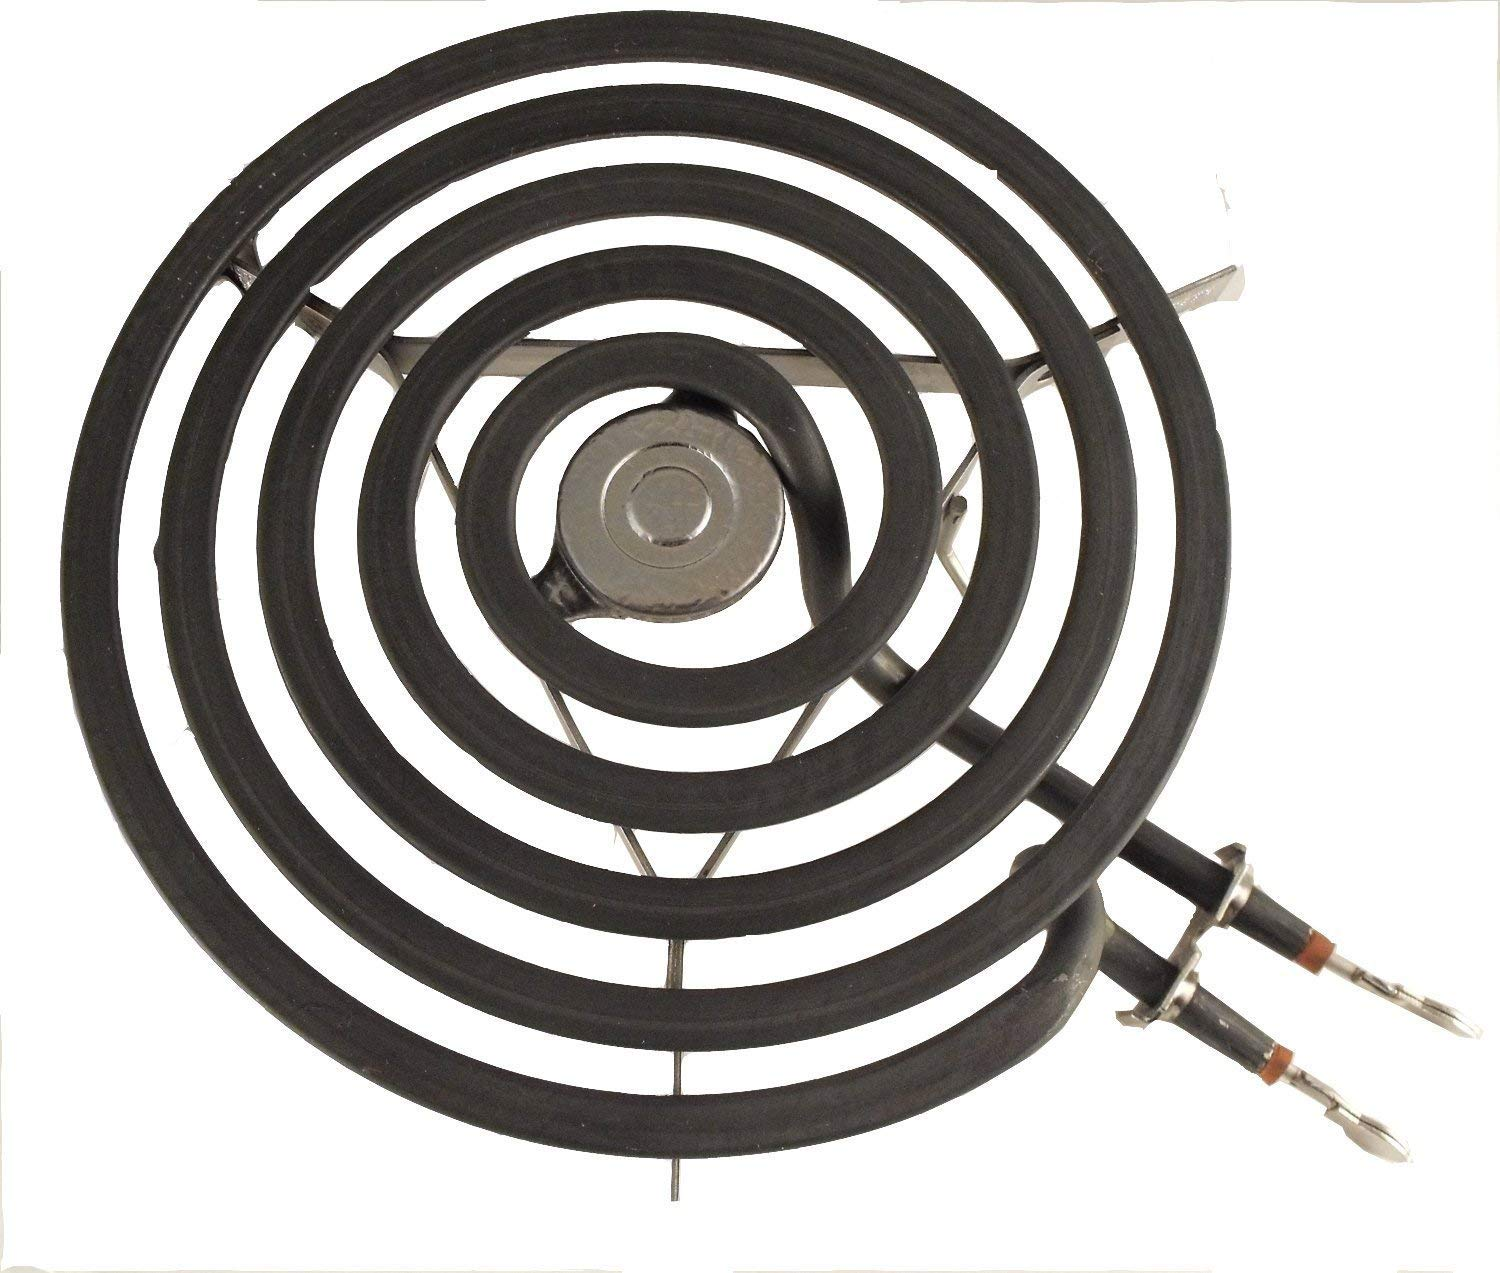 WB30M1 Surface Element for GE 6-Inch Electric Range Burner by PartsBroz - Replaces Part Numbers AP2634727, AH243867, CH30M1, PS243867, WB30M0001, WB30X5129, YCH30M1, and More